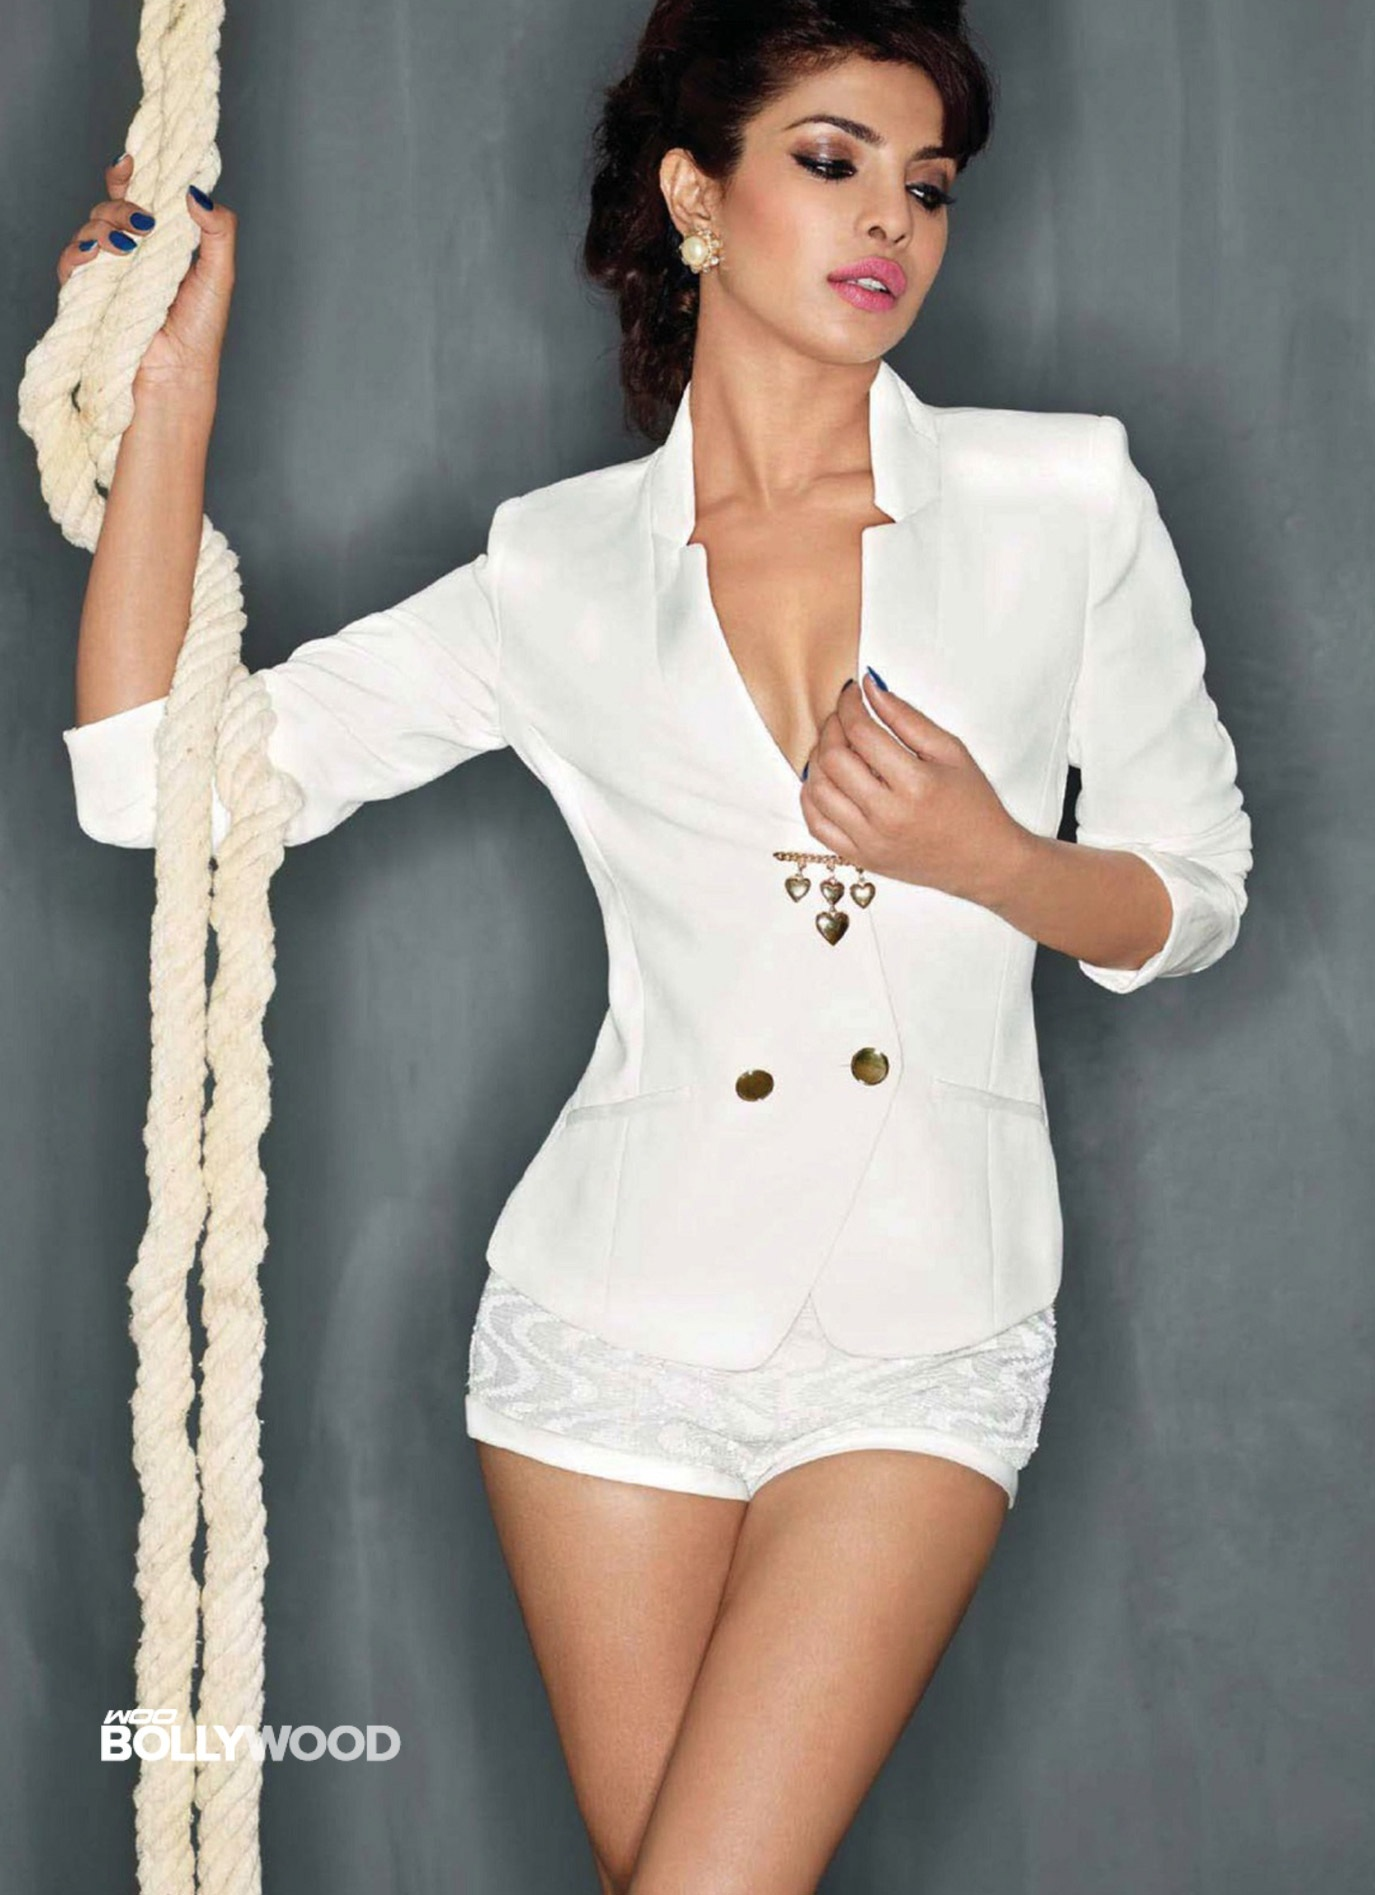 Priyanka Chopra Latest Hot Photo Shoot Stills Hot